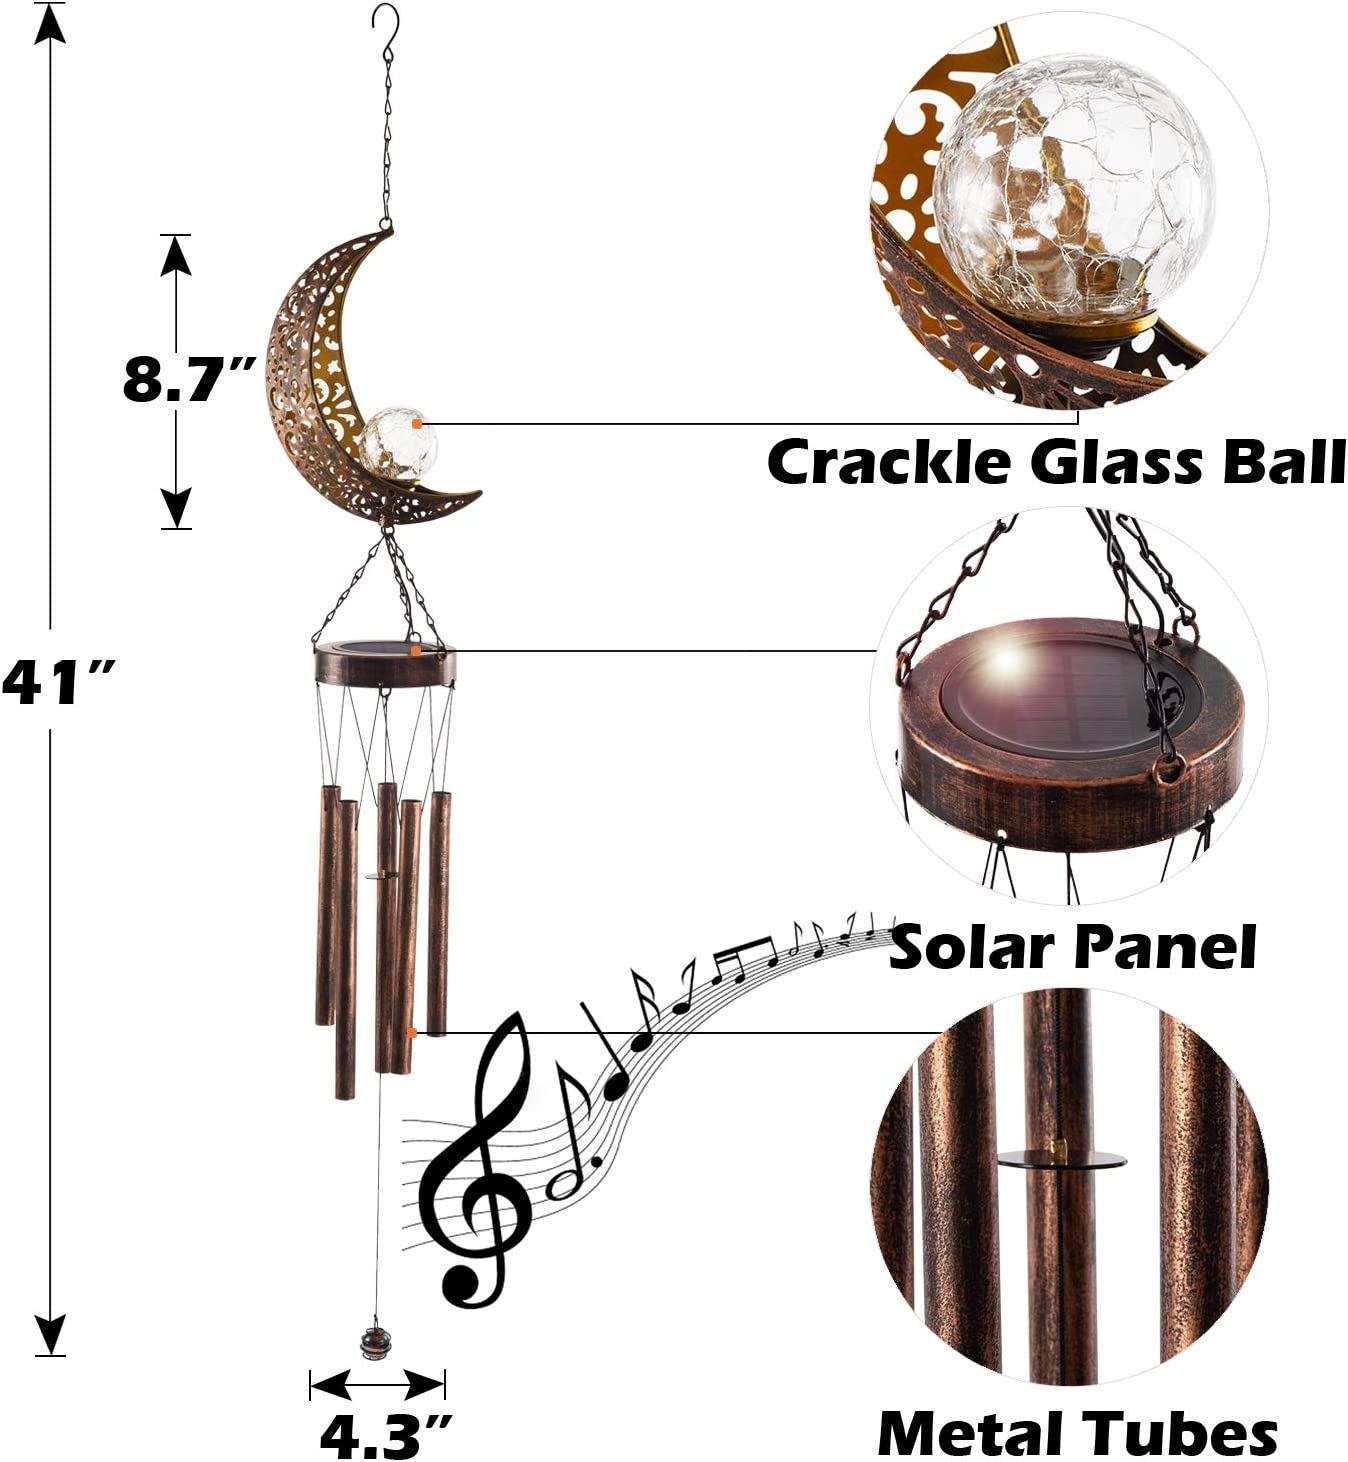 LeiDrail Solar Wind Chimes for Outside Hanging Outdoor Decor Moon Crackle Glass Ball Warm LED Light Sympathy Wind Chime Unique Memorial Gift with Metal Tubes Waterproof for Garden Yard Patio Lawn : Garden & Outdoor